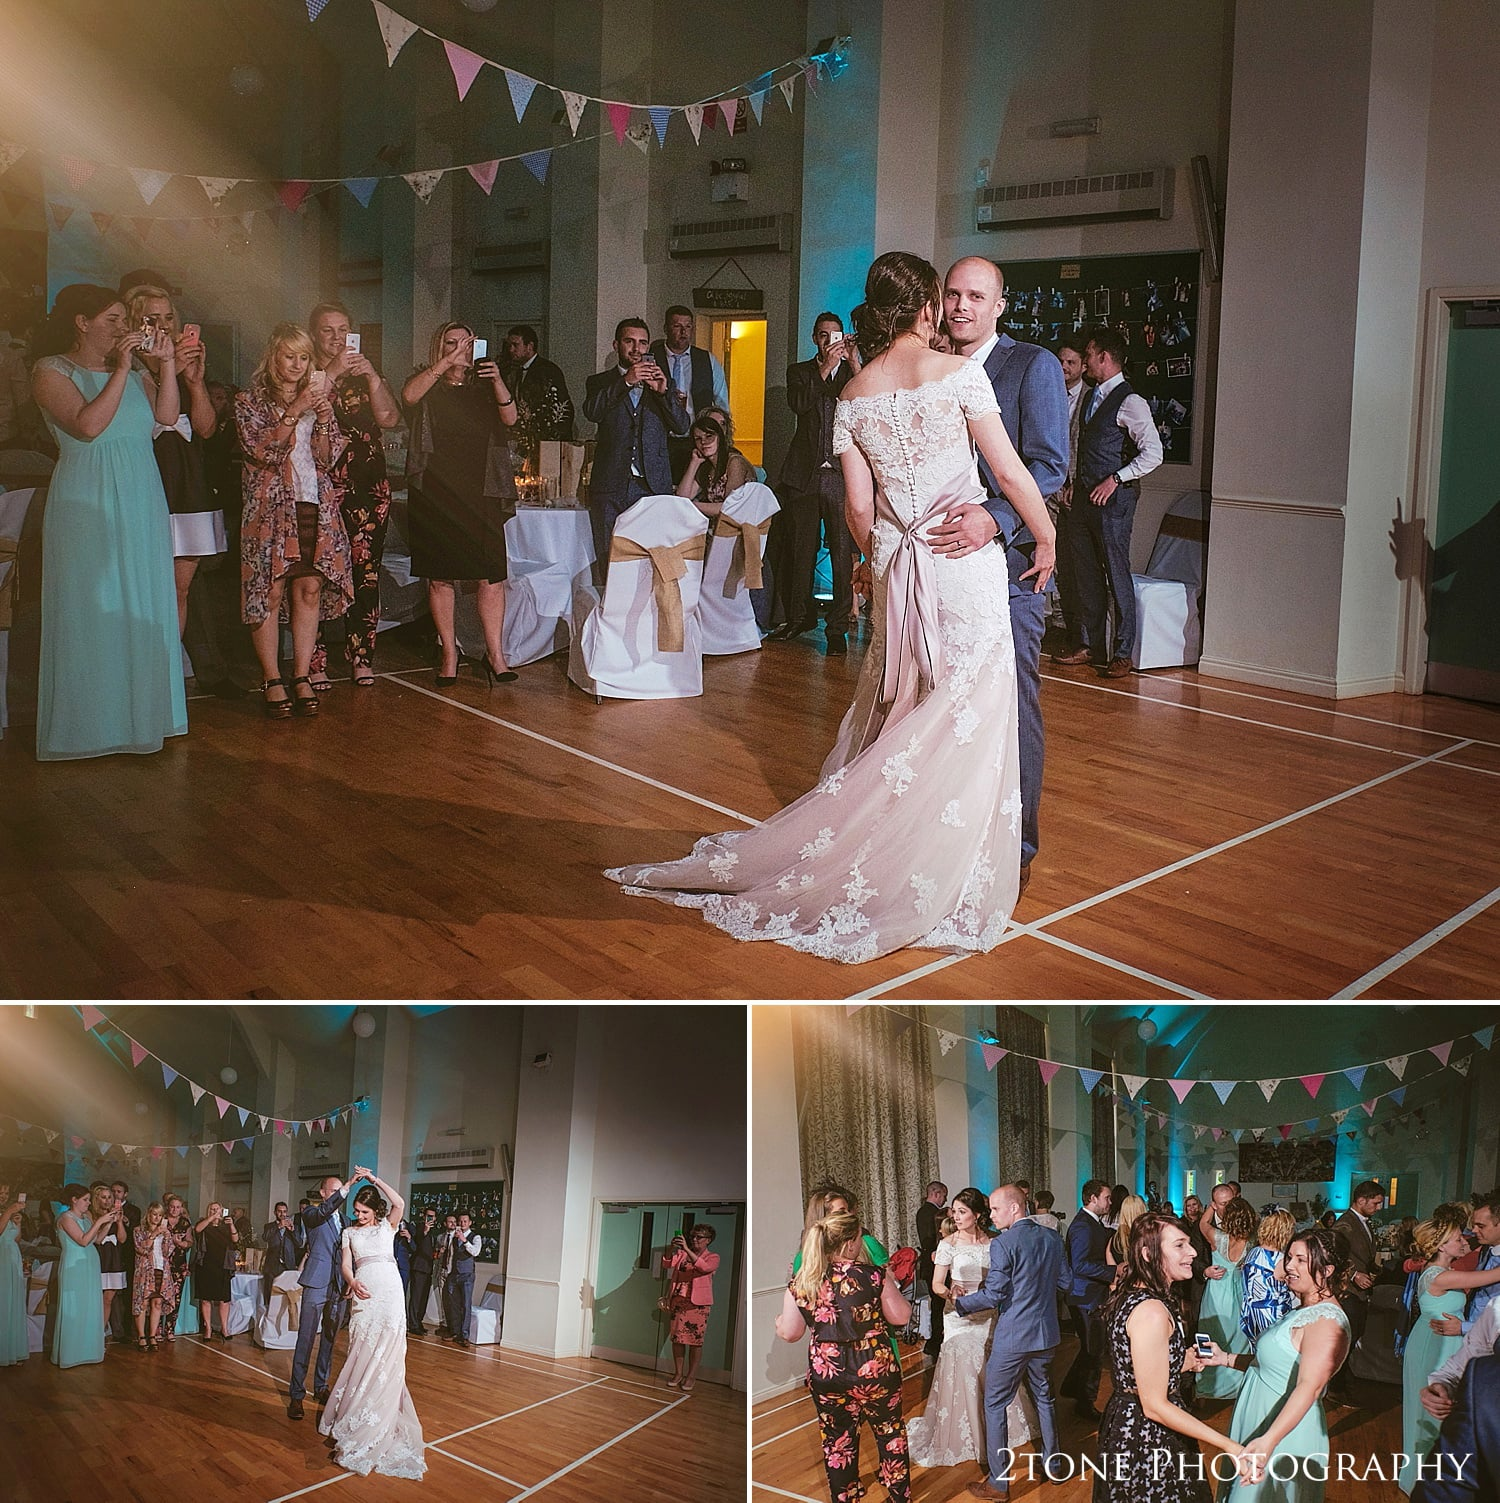 Wedding first dance at Ingleby Greenhow Village Hall by 2tone Photography www.2tonephotograhy.co.uk